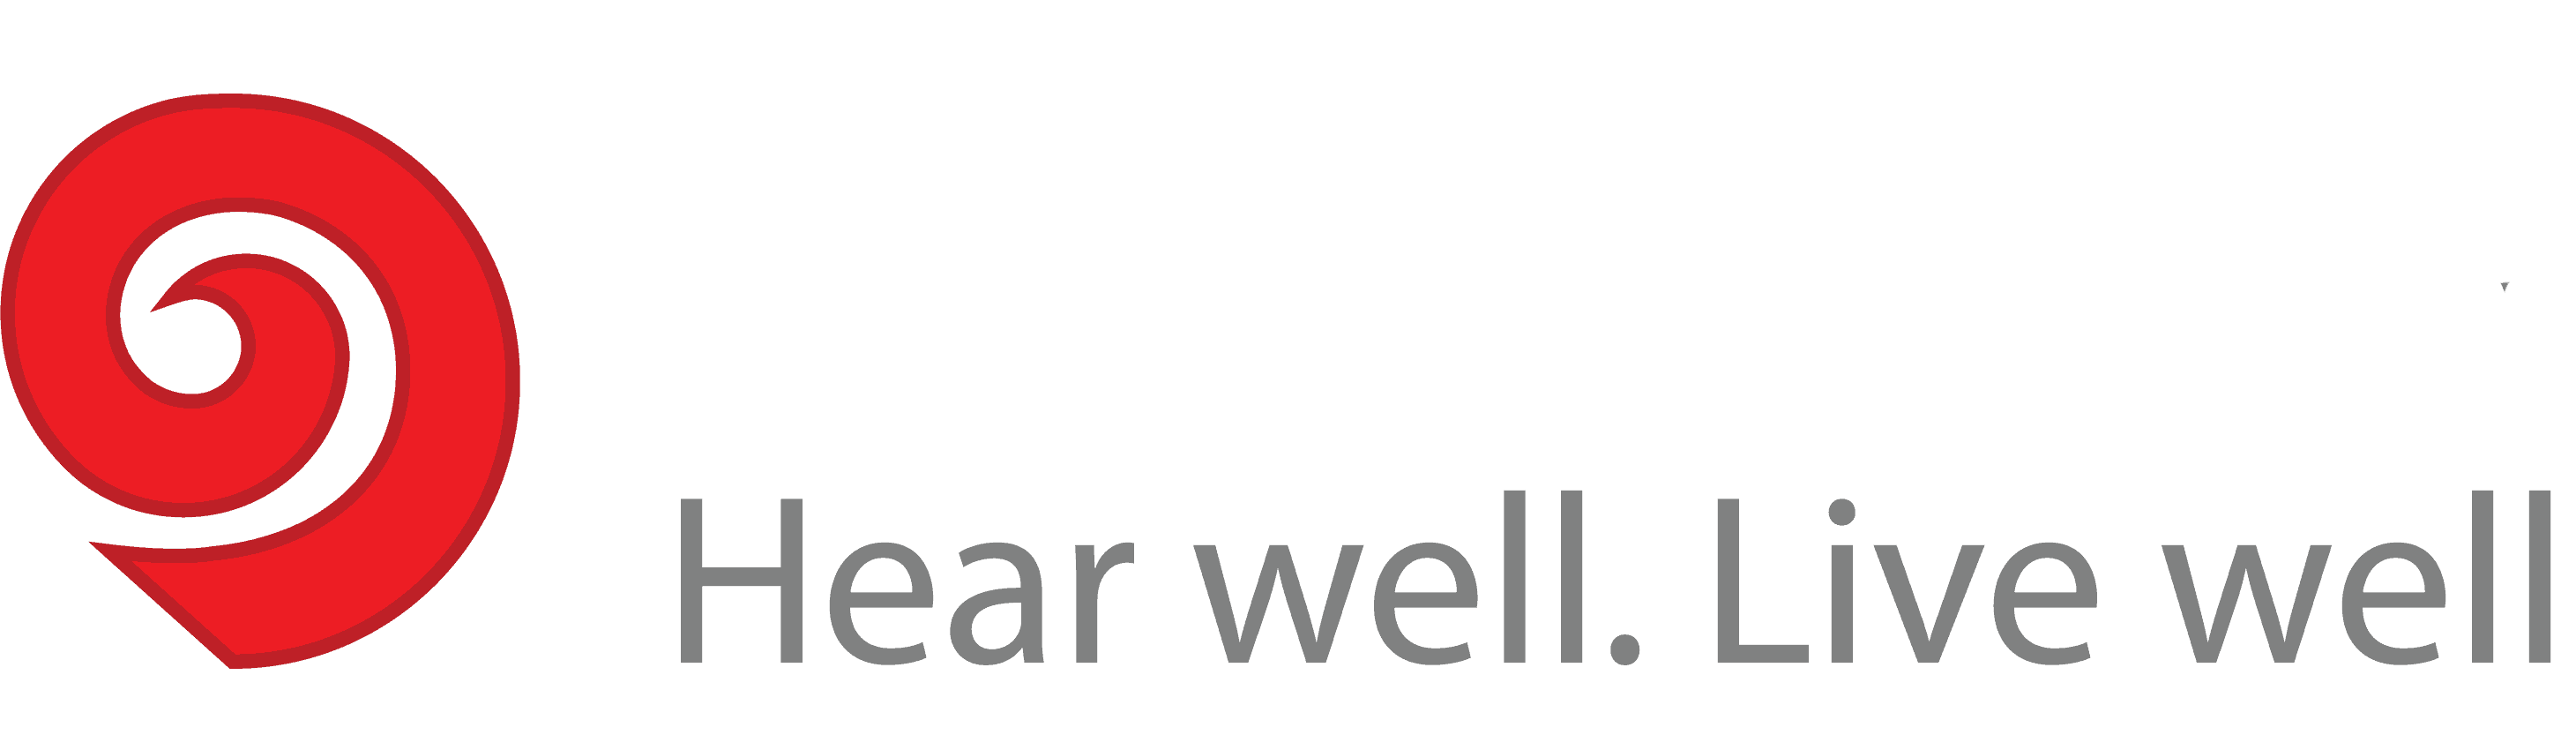 hearwell-livewell